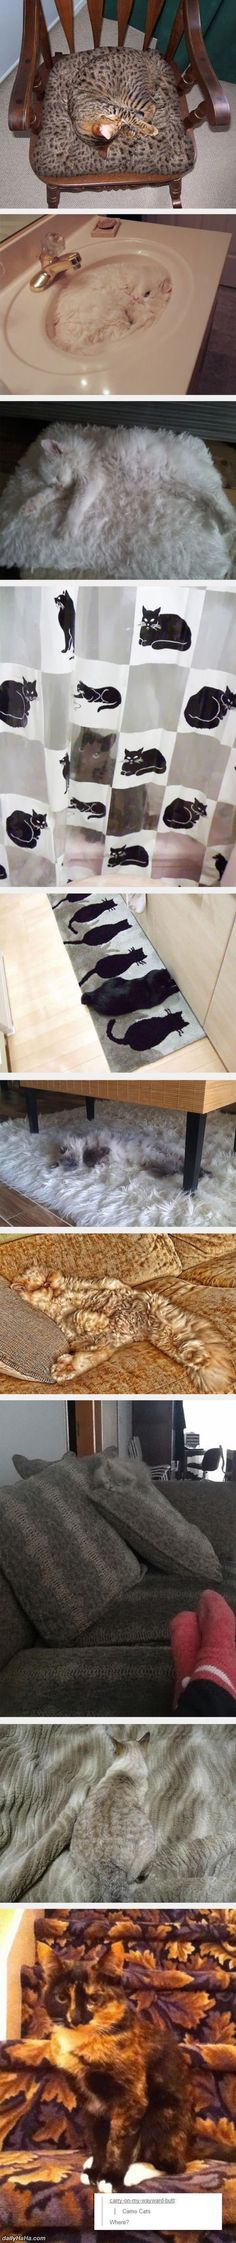 Funny lol -- Camo Cats Daily Funny jokes